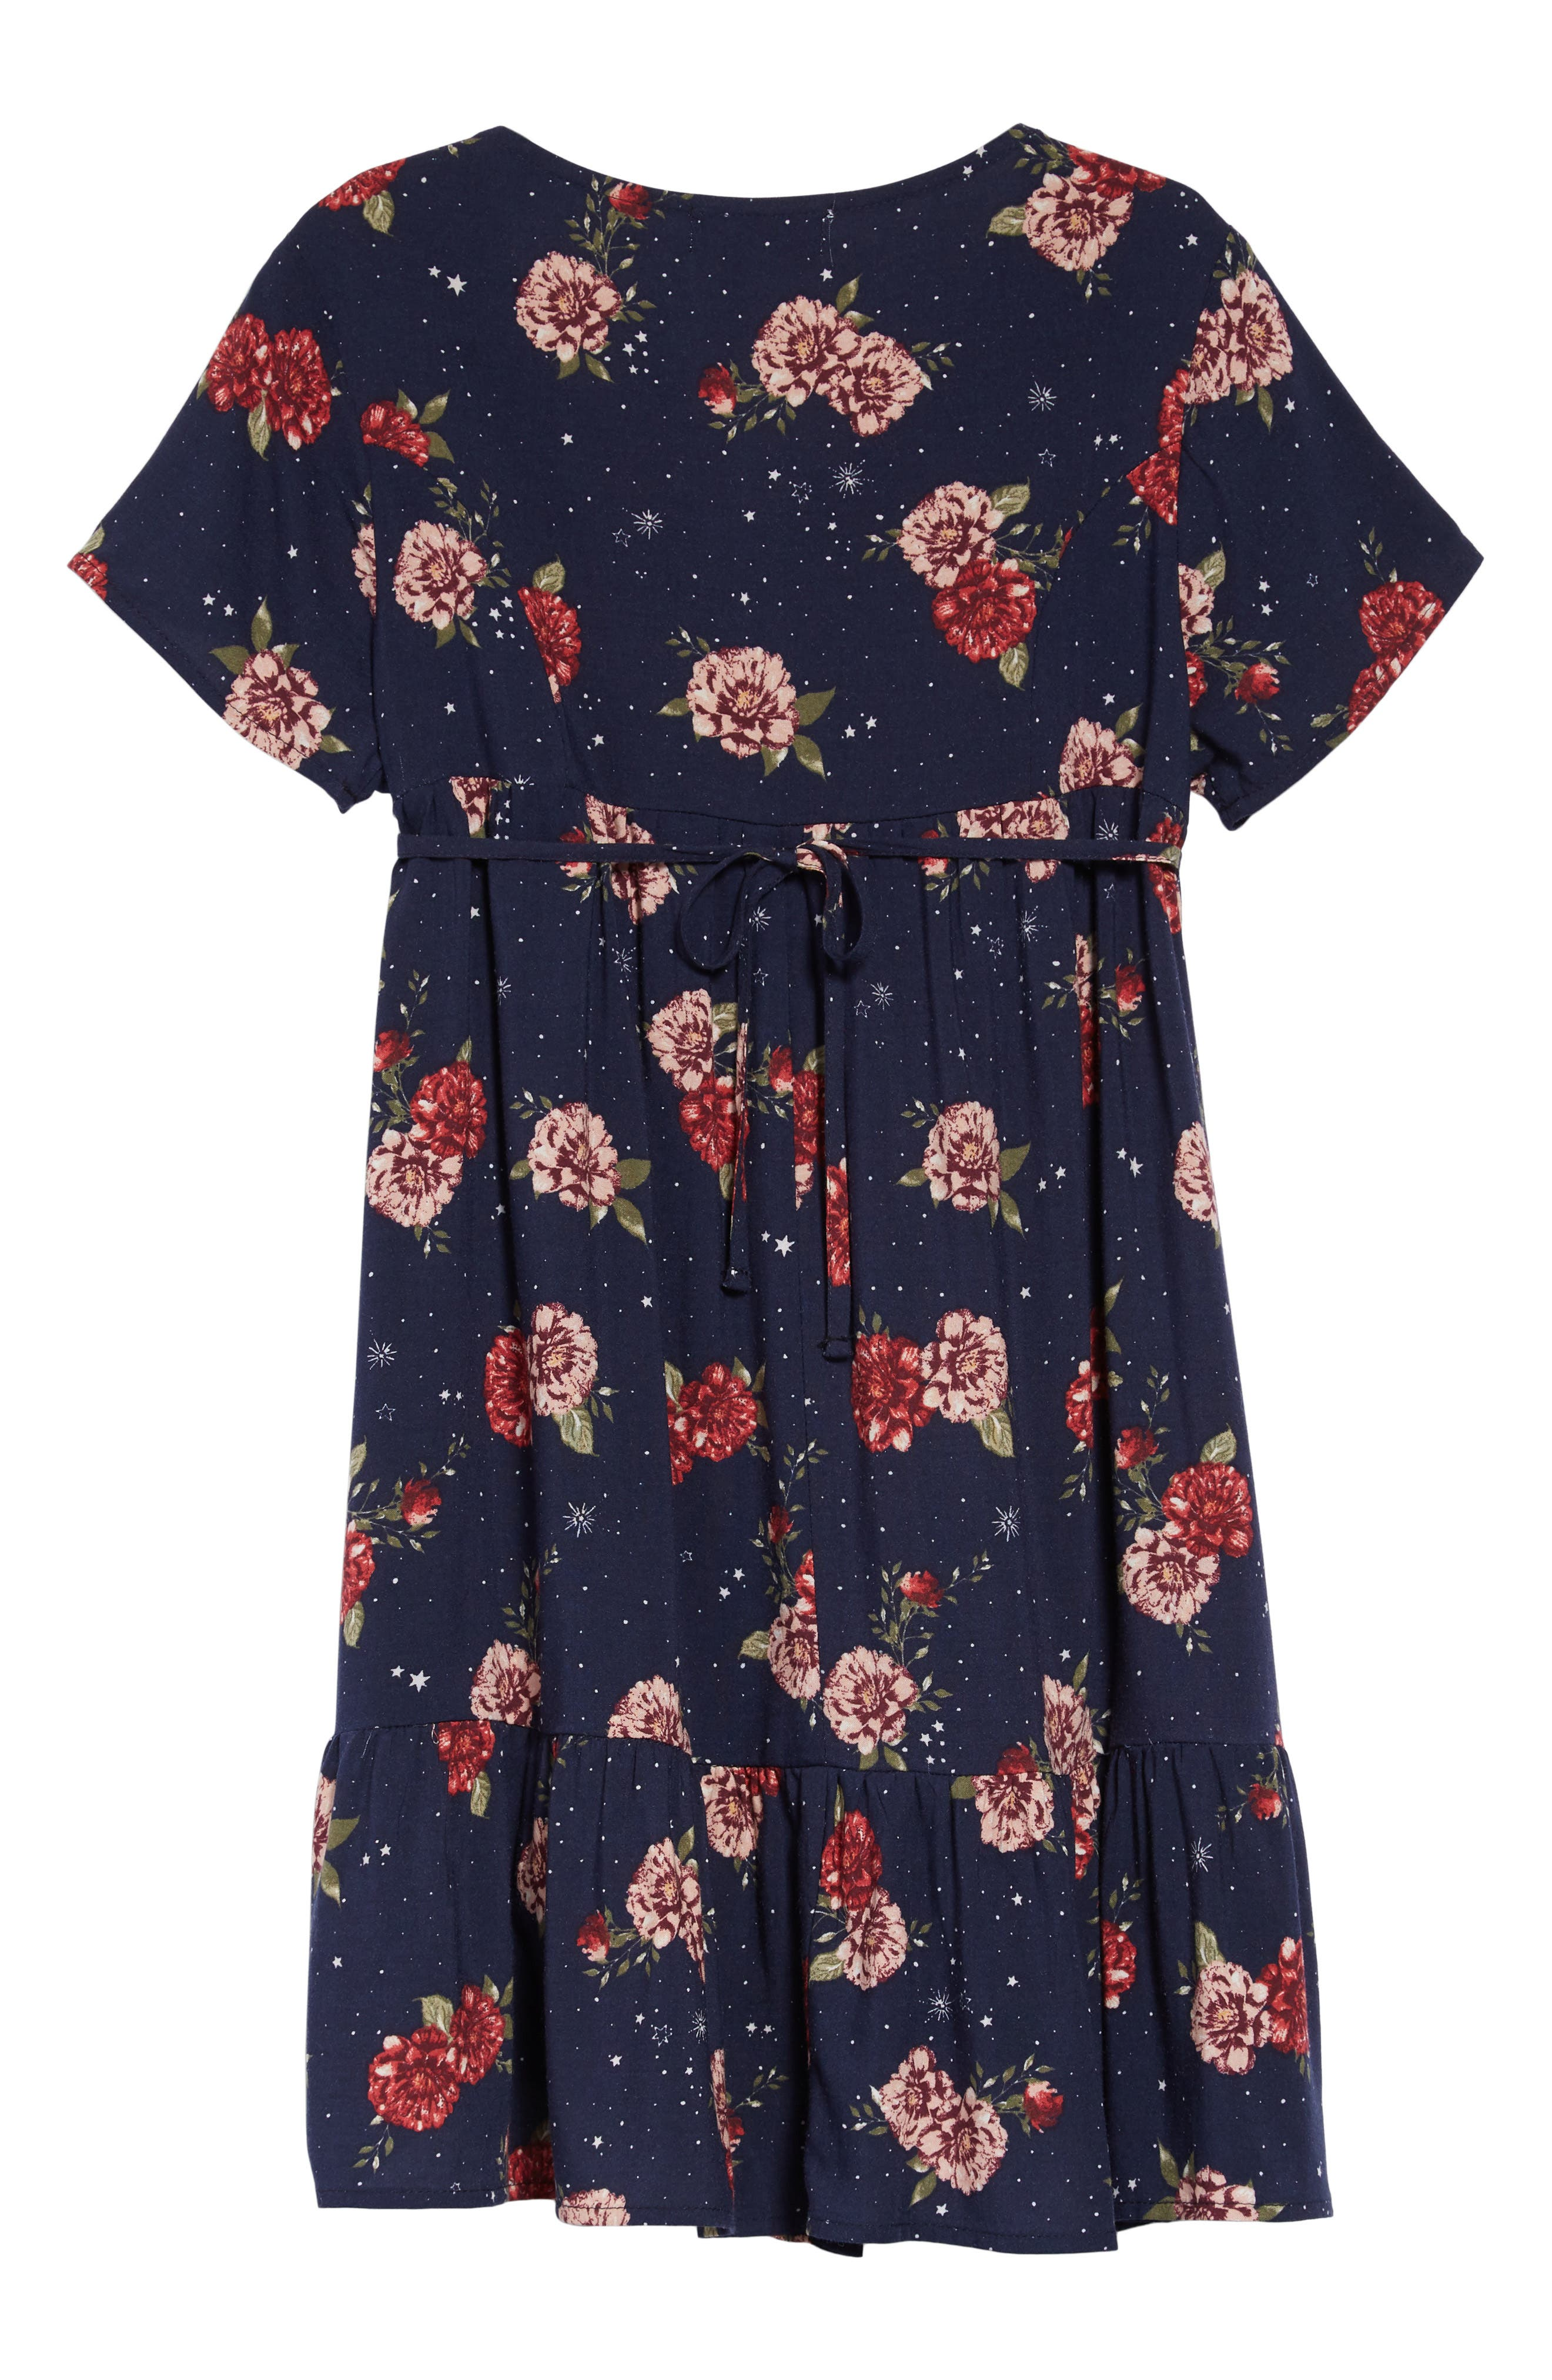 Cosmic Floral Dress,                             Alternate thumbnail 2, color,                             NAVY FLORAL